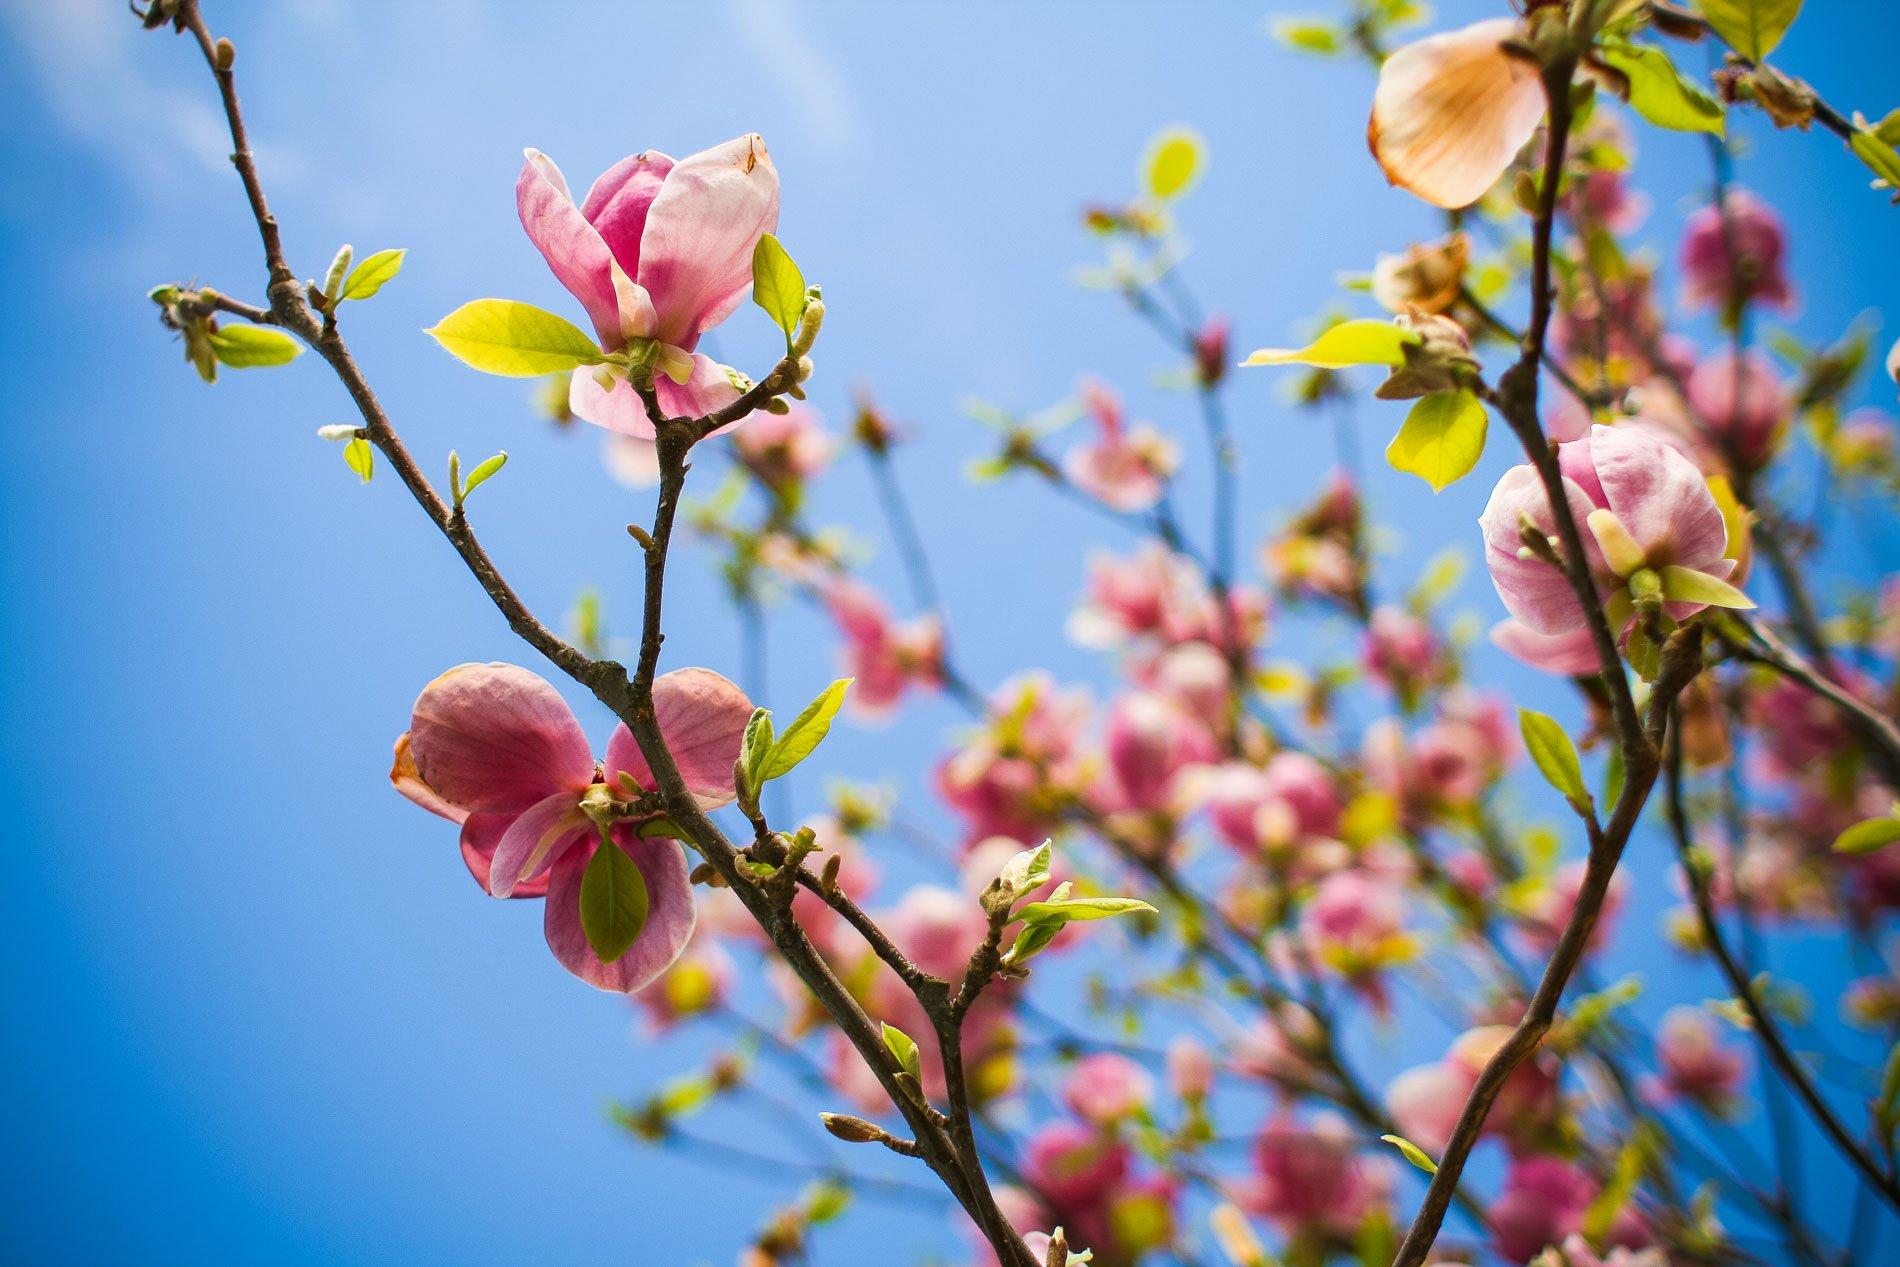 Image of pink flowers sprouting from tree branches